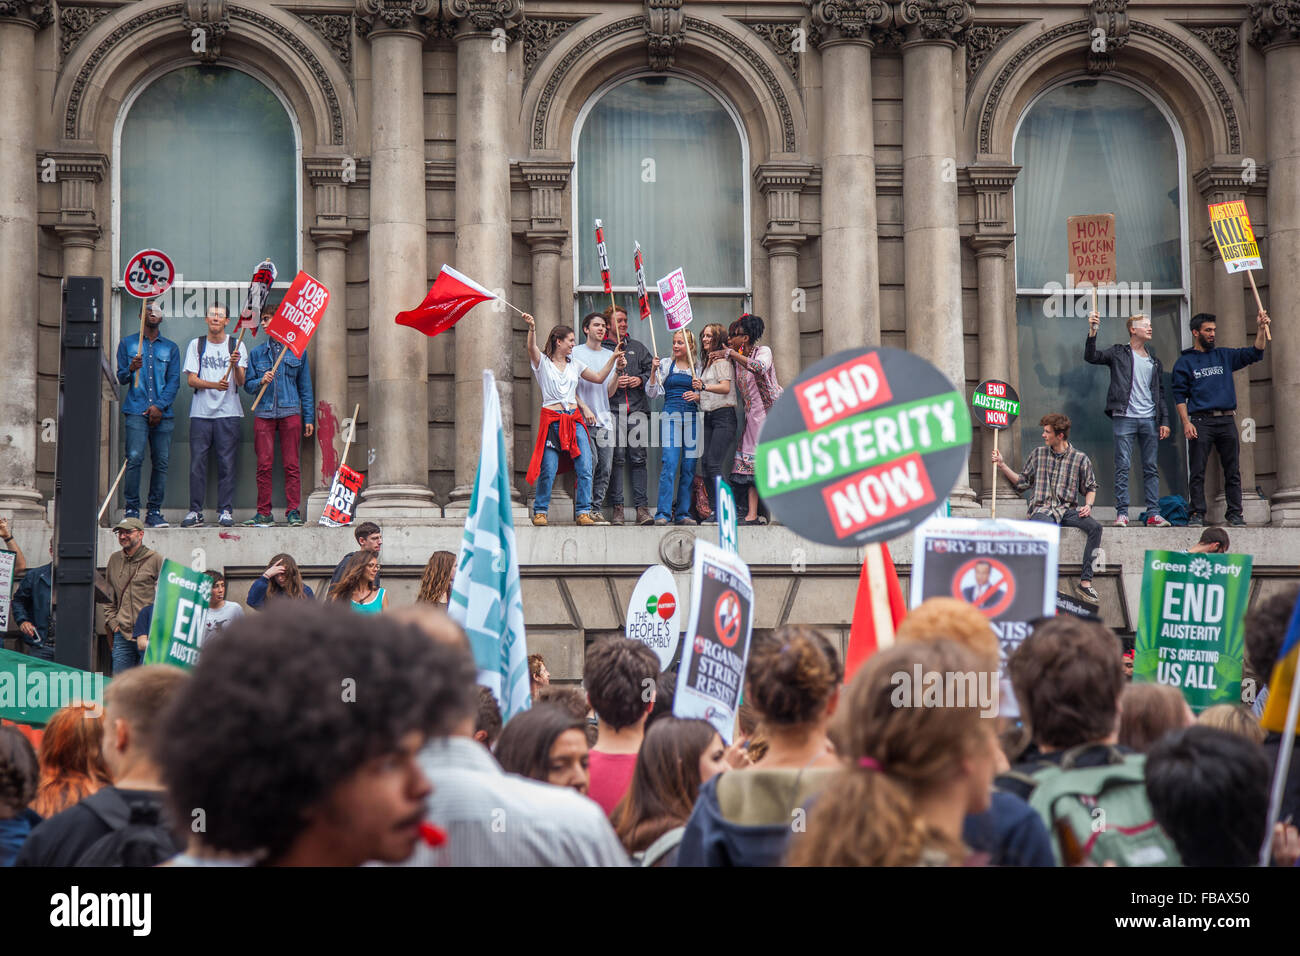 Students protesting & enjoying themselves at London Anti-Austerity Rally - Stock Image